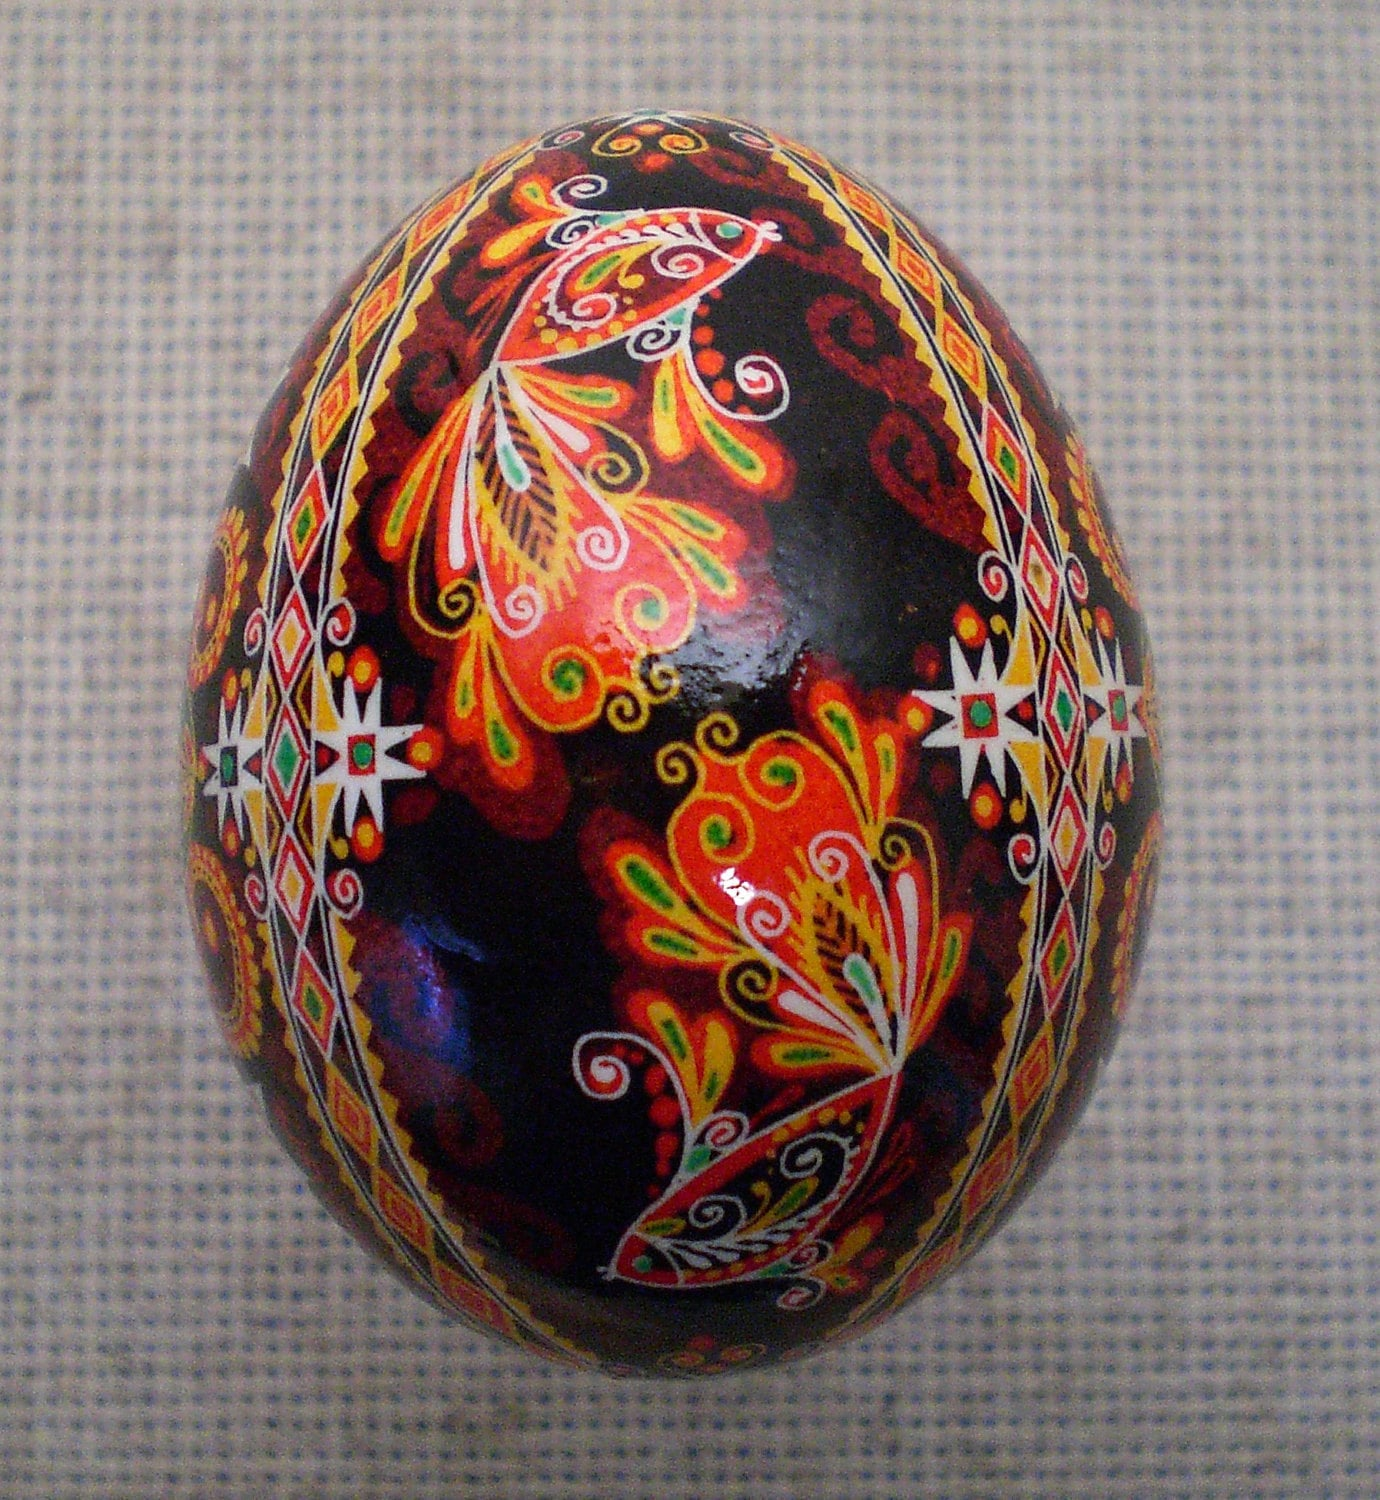 pysanka pysanky from ukraine chicken easter egg by oleh